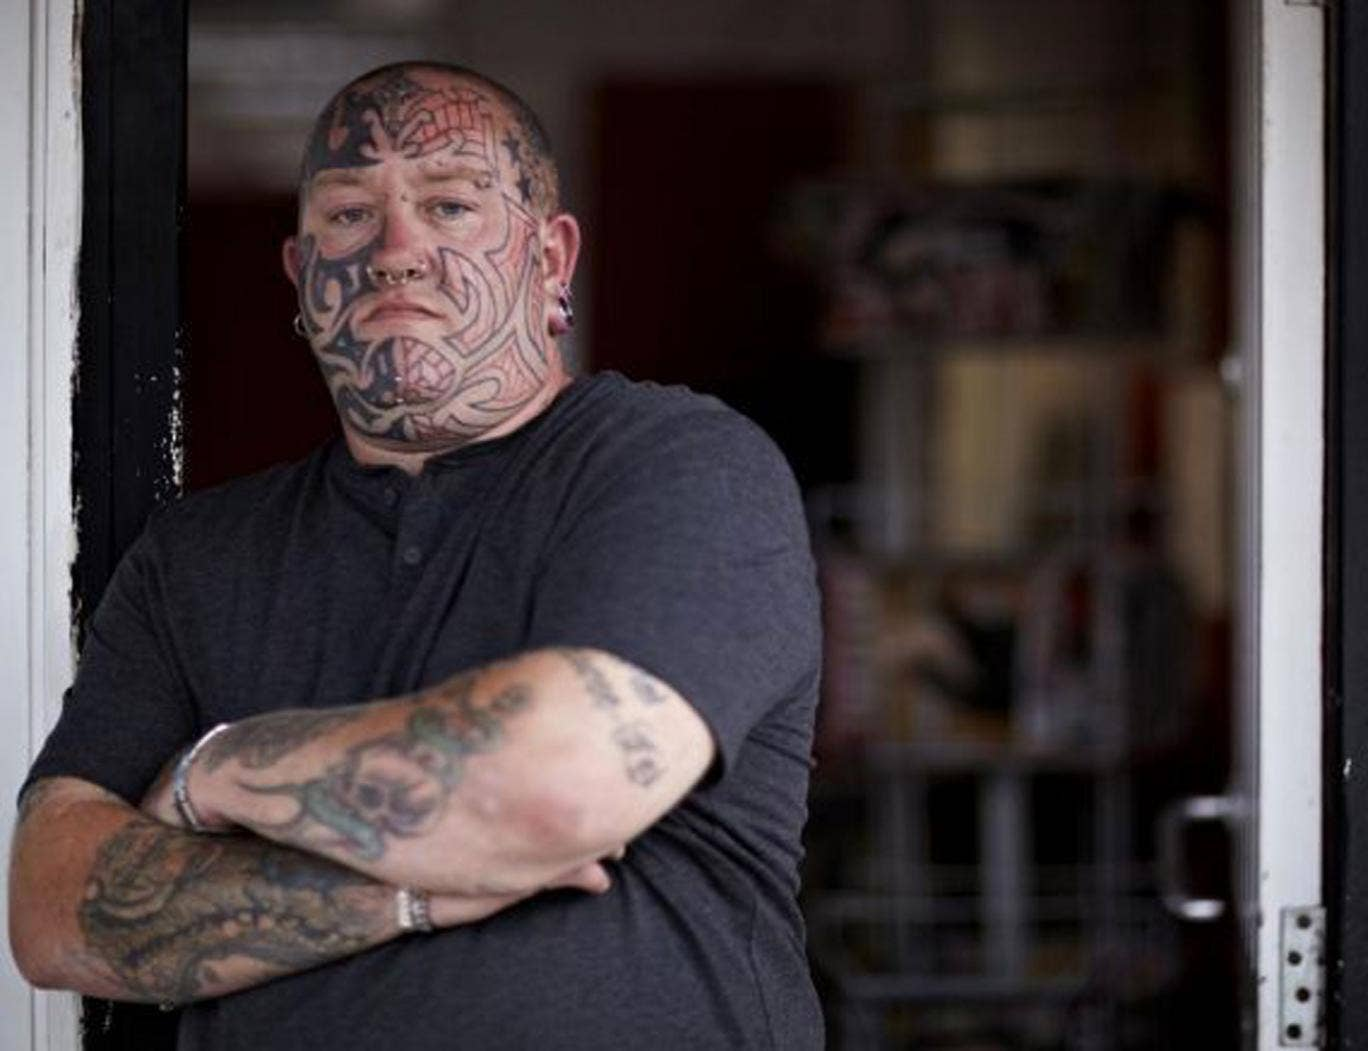 Face values: Paul from Channel 4's 'My Tattoo Addiction'